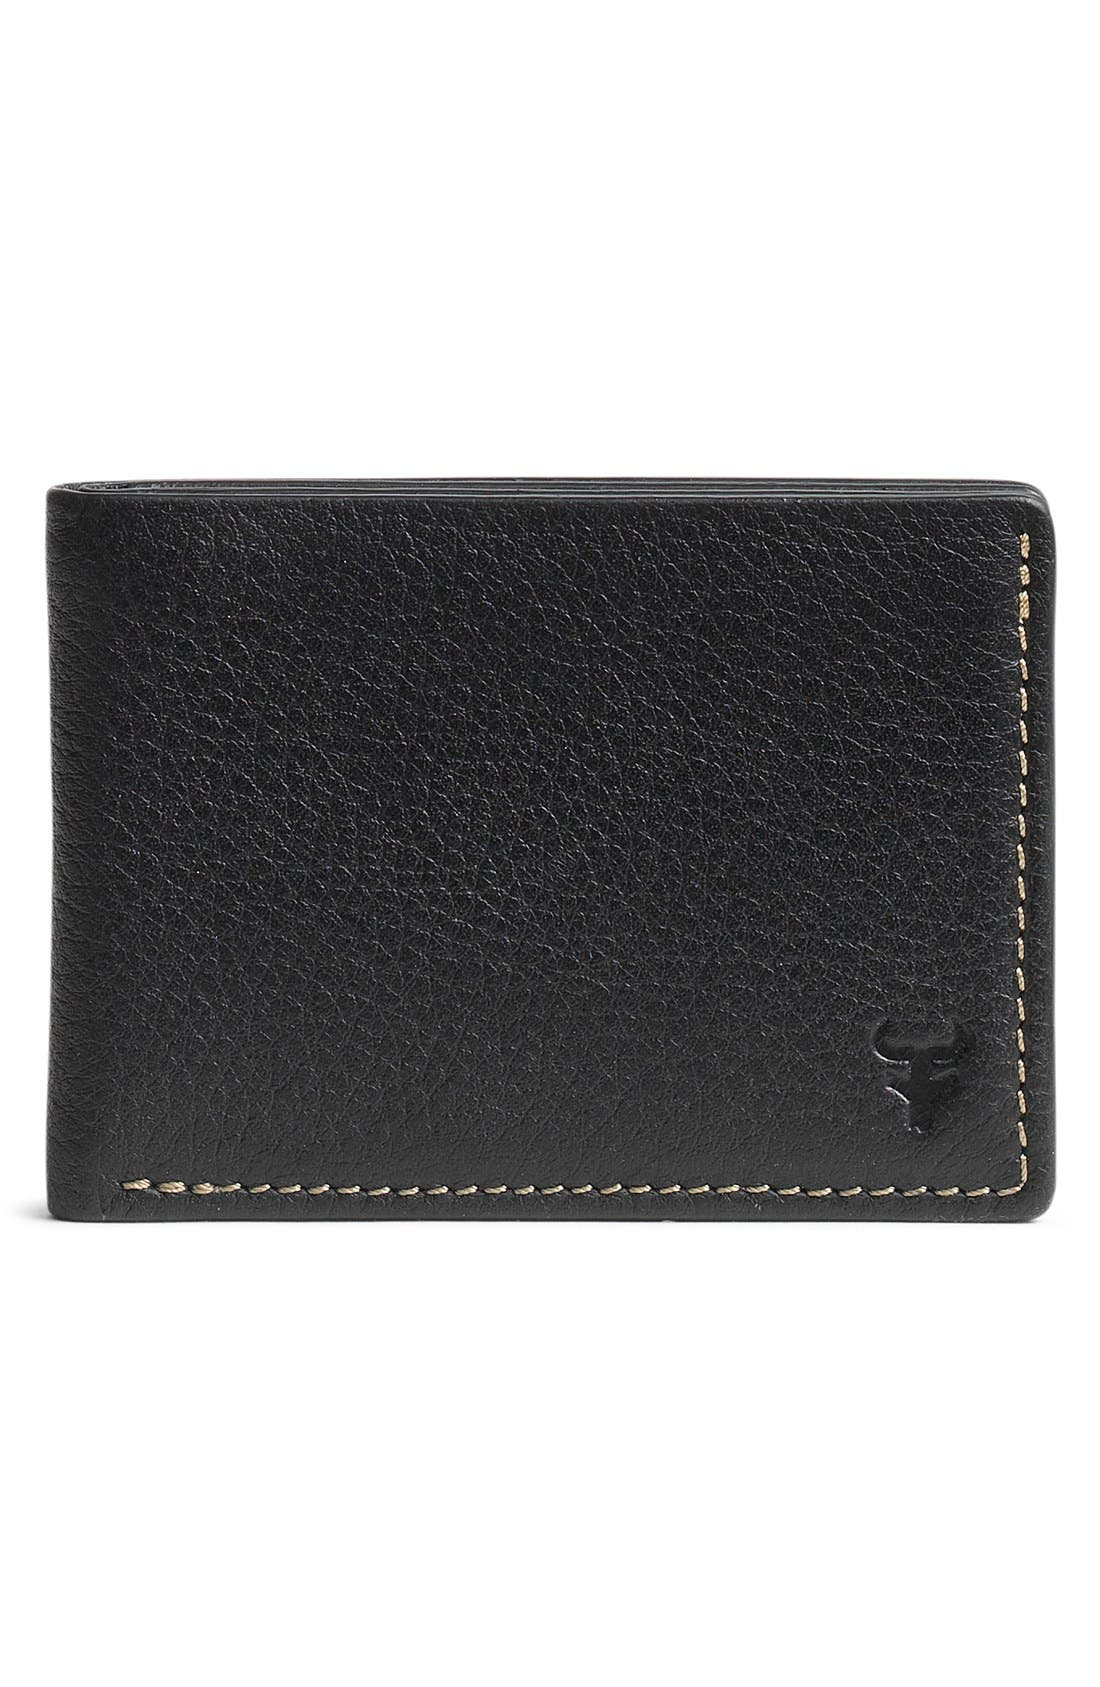 TRASK Jackson Super Slim Leather Wallet